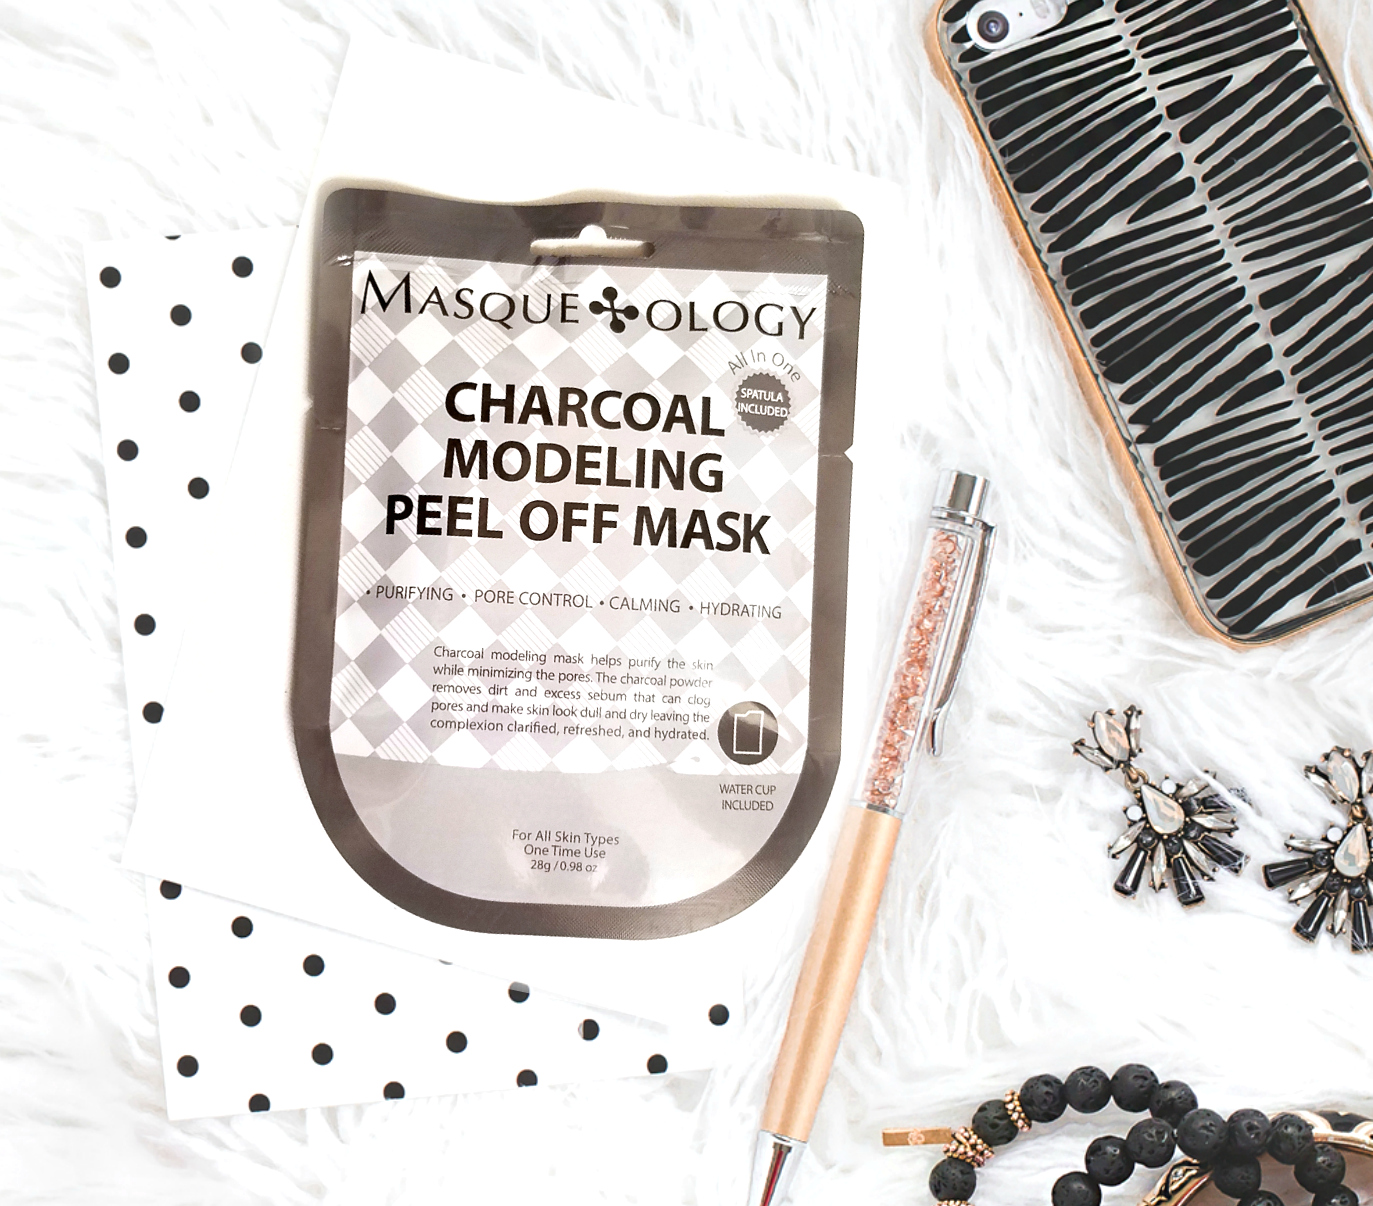 Why Activated Charcoal Is A Must For Skincare Masks: What The Heck Is Activated Charcoal And Why Should I Add